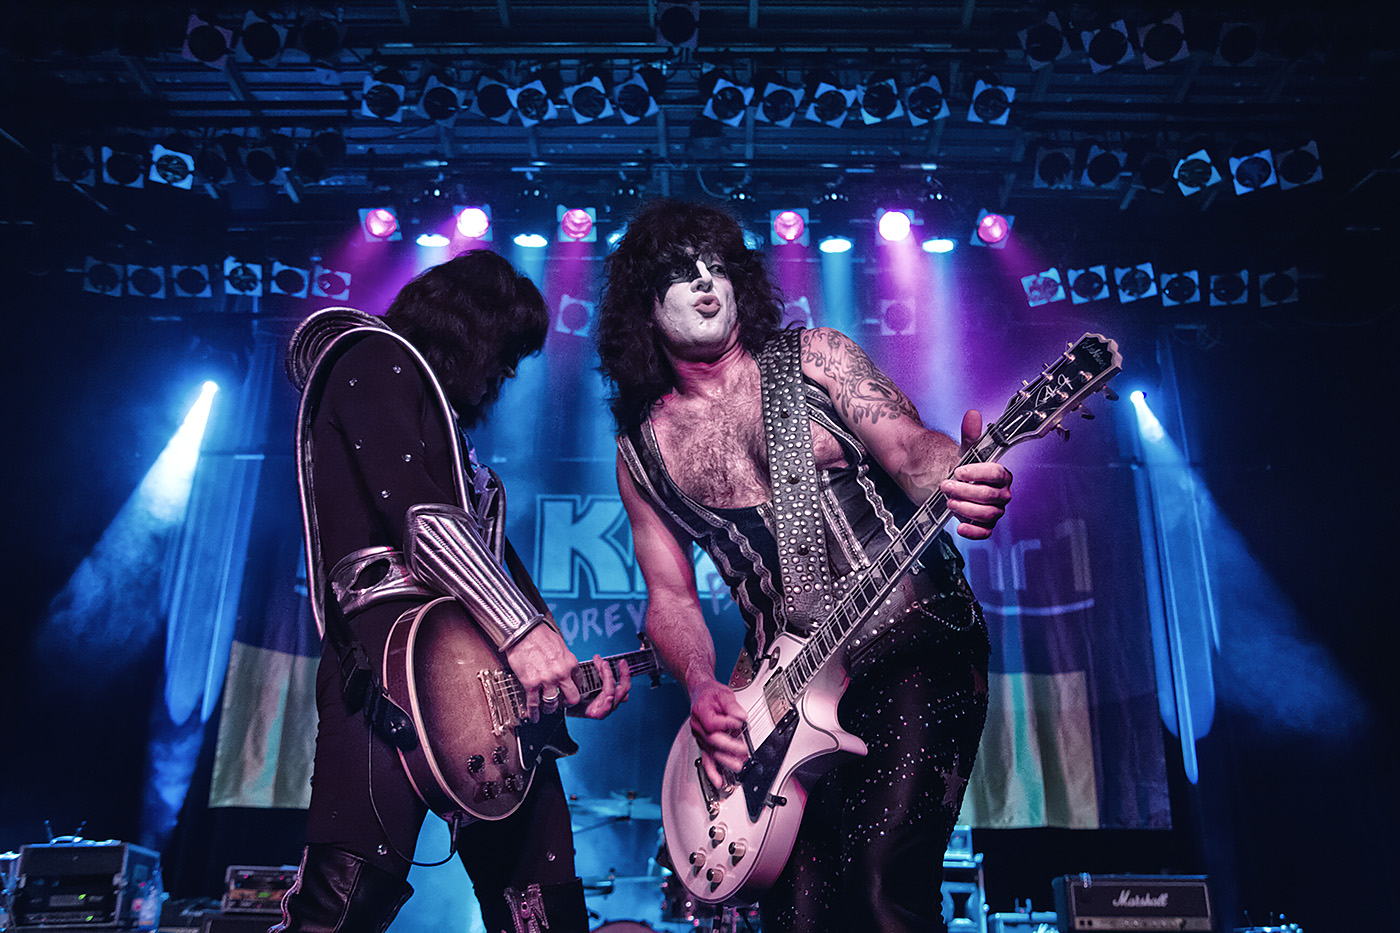 Kiss forever Band Open Doors Festival Zoltan Vary und Zoltan Marothy